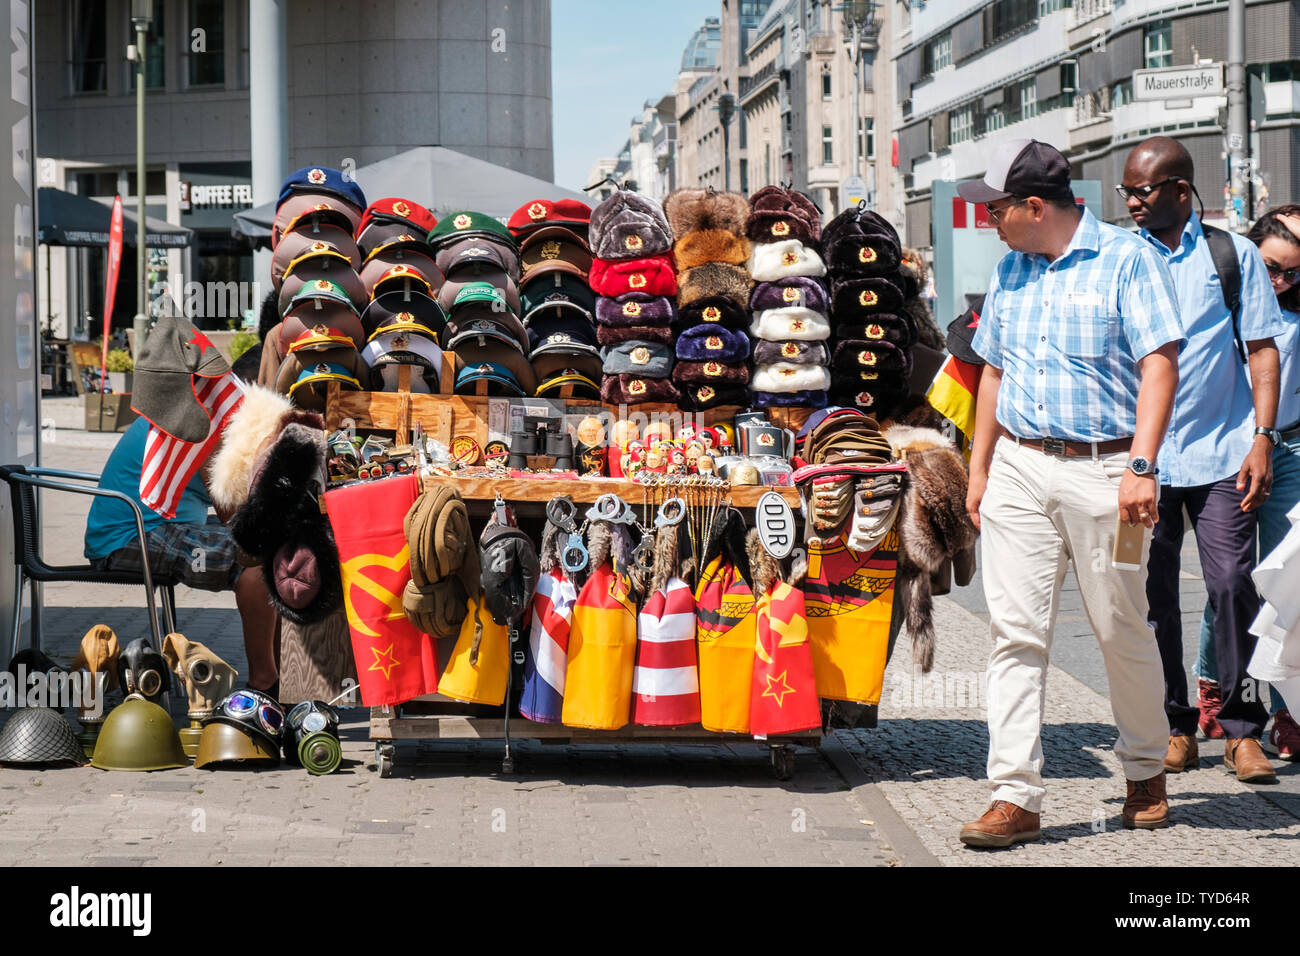 Berlin, Germany - June, 2019:  Street stall with souvenirs and socialist memorabilia from East Germany (DDR)       at landmark Checkpoint Charlie in B - Stock Image